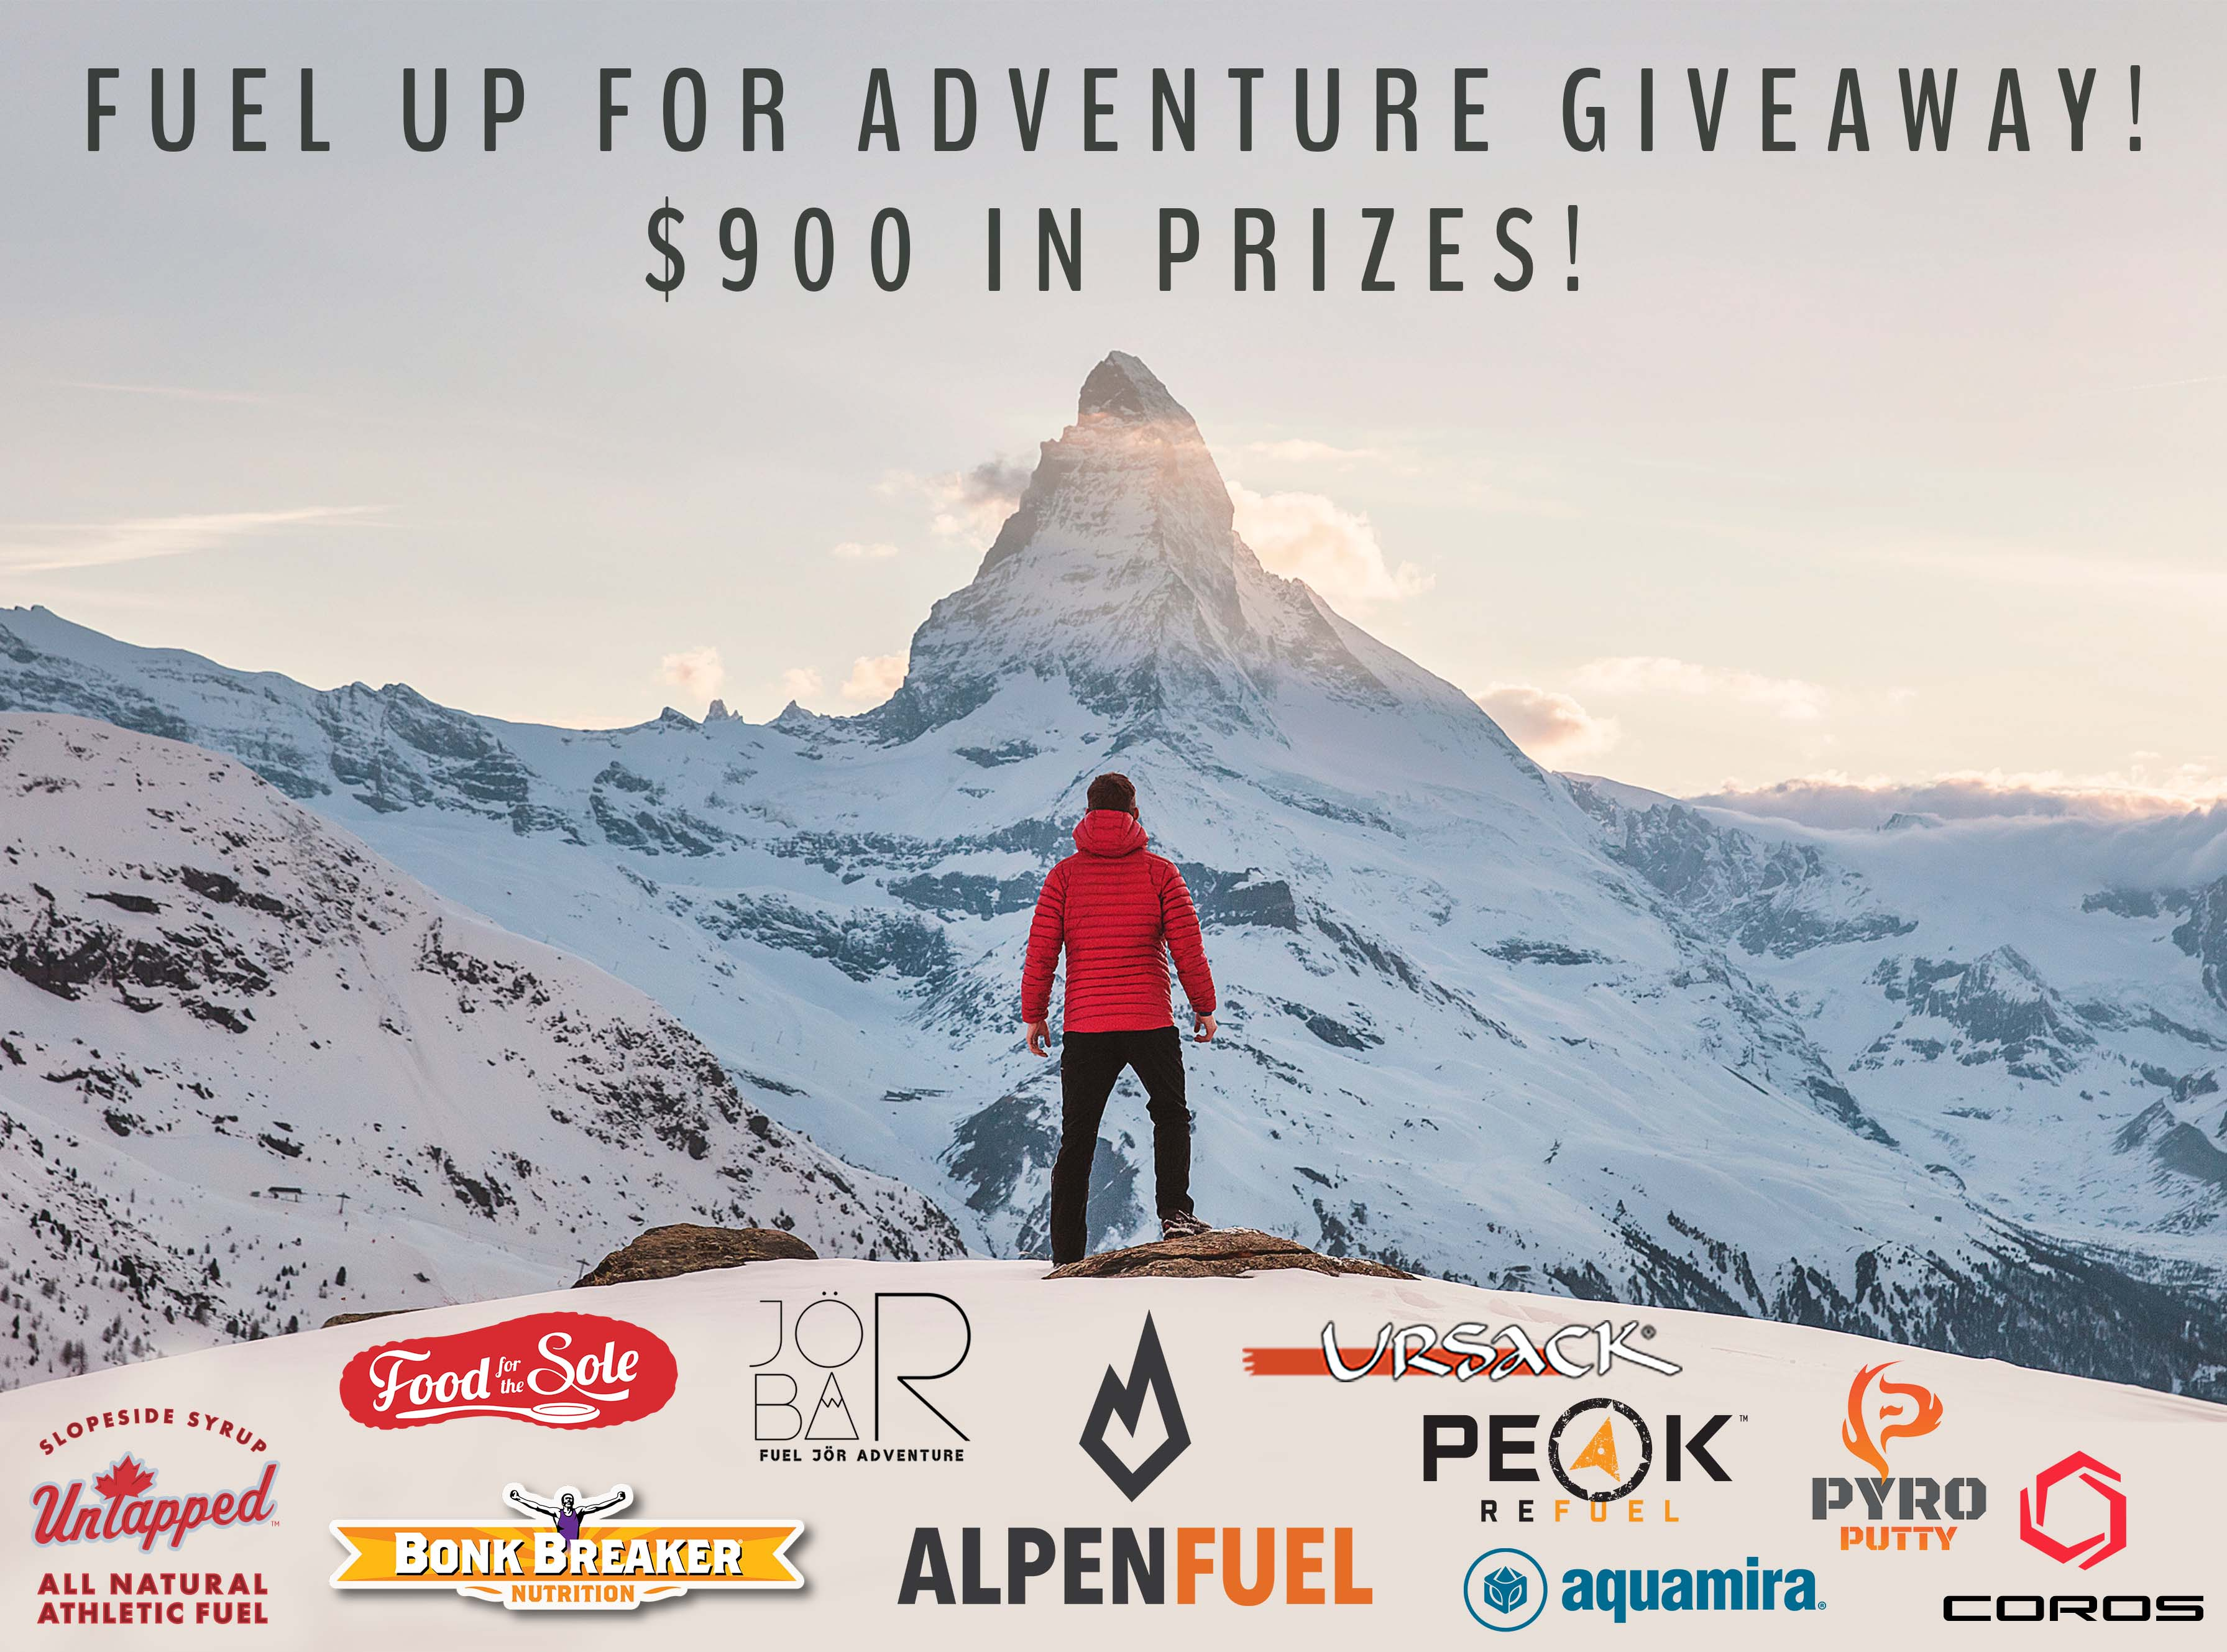 Alpen Fuel Giveaway January 2020